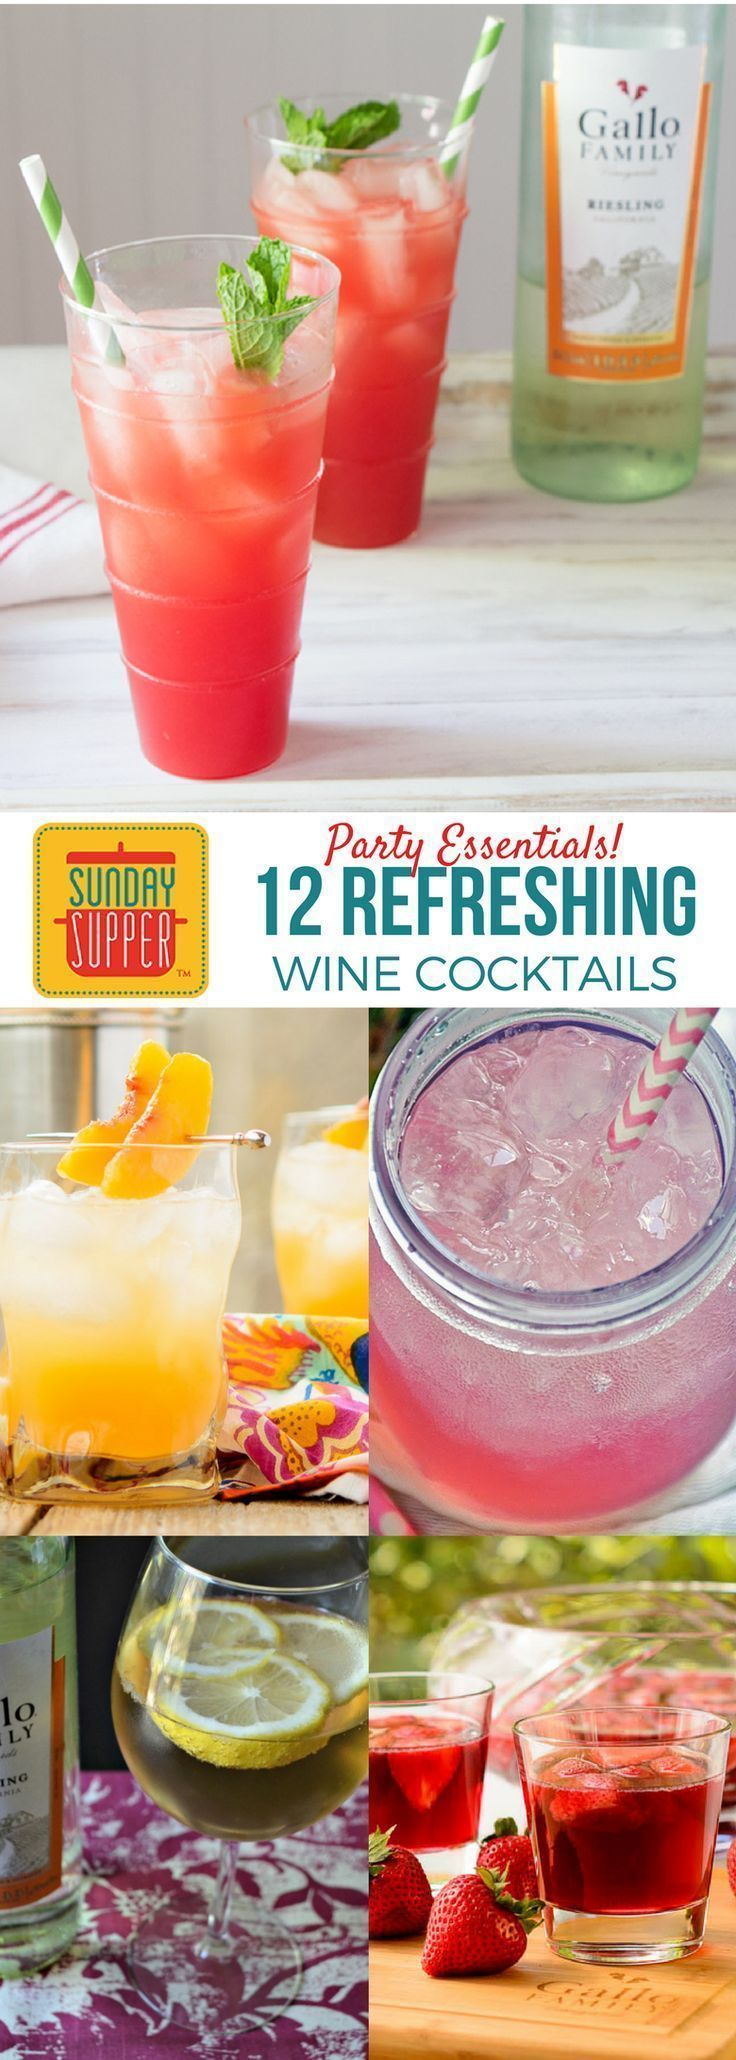 Simple mixed drinks are a must for any good party! These Sunday Supper recipes will teach you how to make mixed drinks and will keep your party going all night long! #SundaySupper #simplemixeddrinks Simple mixed drinks are a must for any good party! These Sunday Supper recipes will teach you how to make mixed drinks and will keep your party going all night long! #SundaySupper #simplemixeddrinks Simple mixed drinks are a must for any good party! These Sunday Supper recipes will teach you how to m #simplemixeddrinks